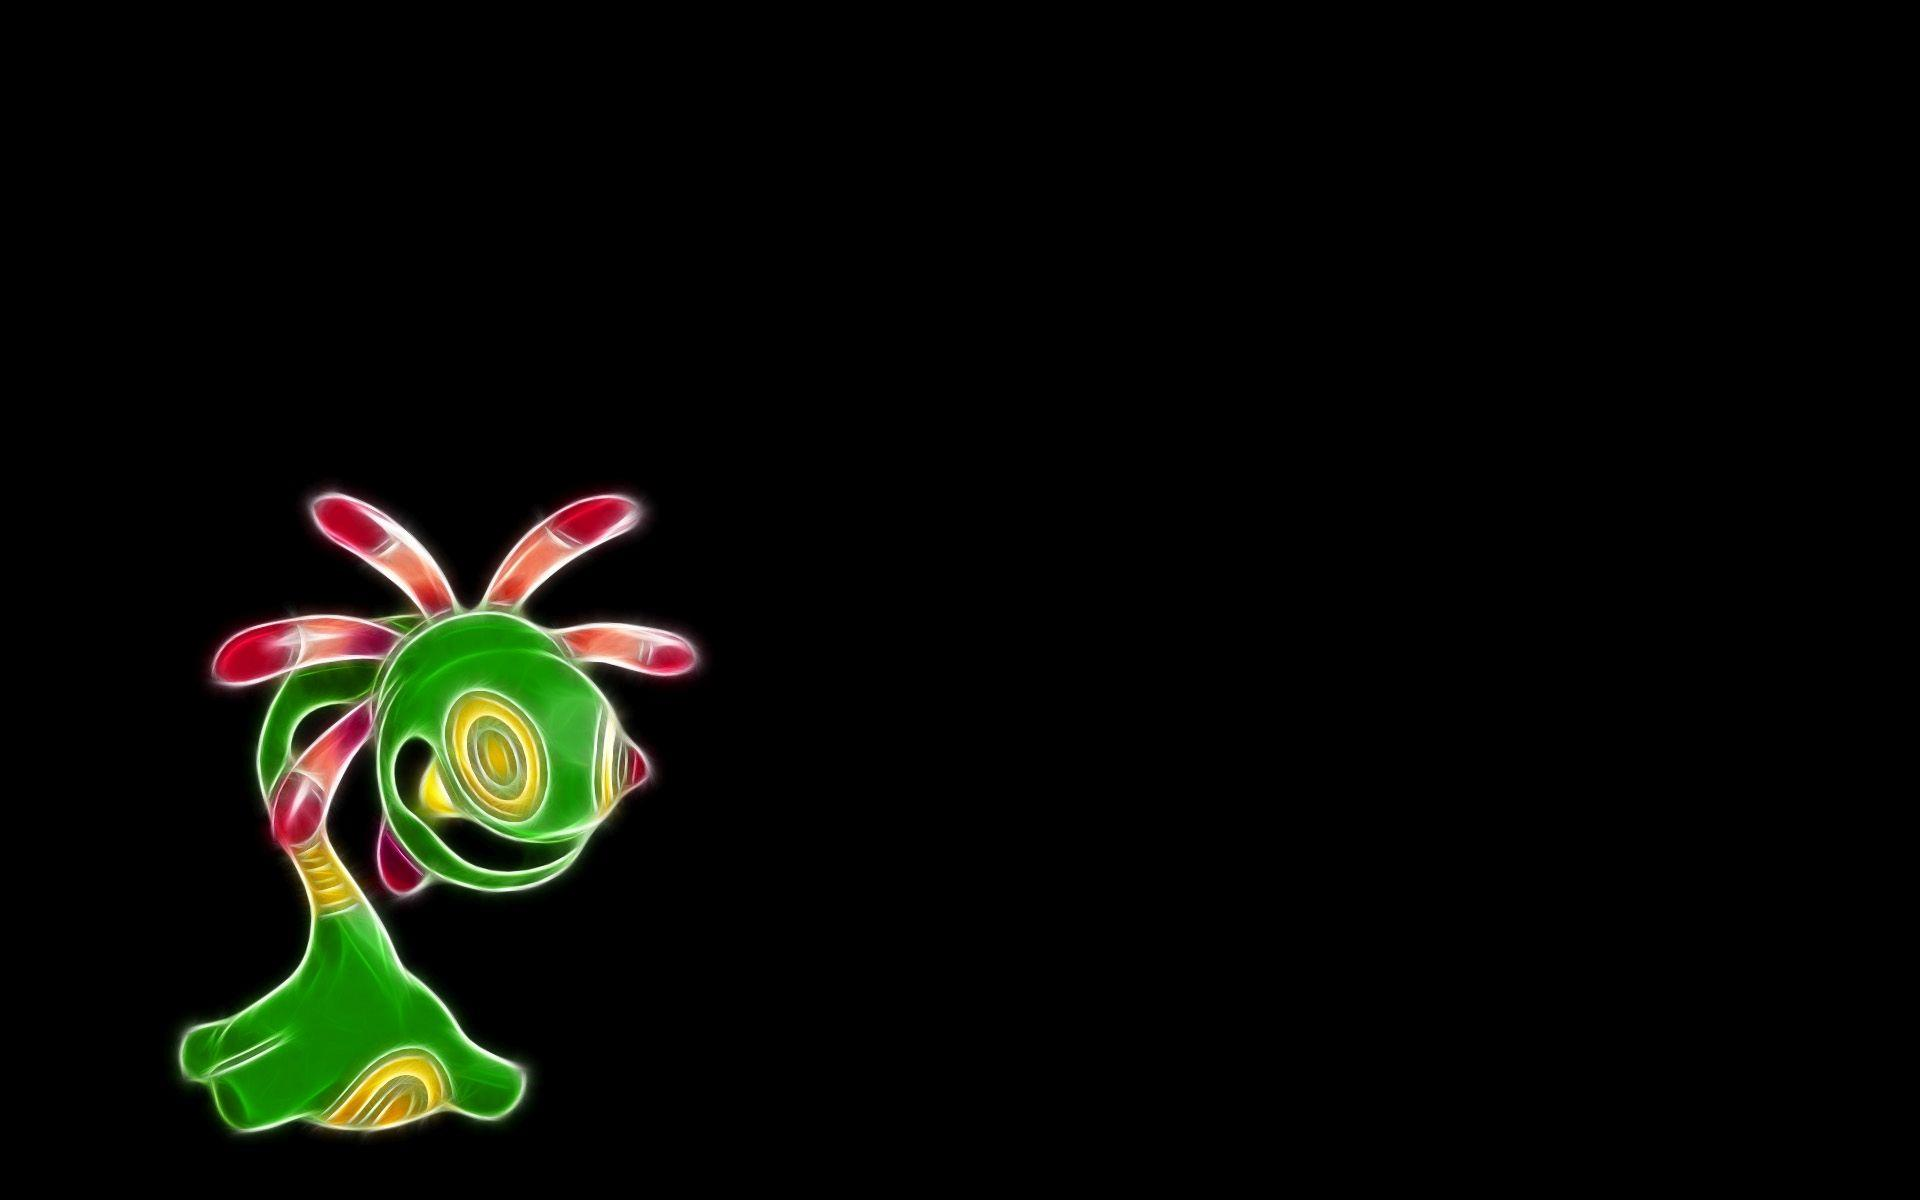 Cradily - Pokemon Wallpaper #27281